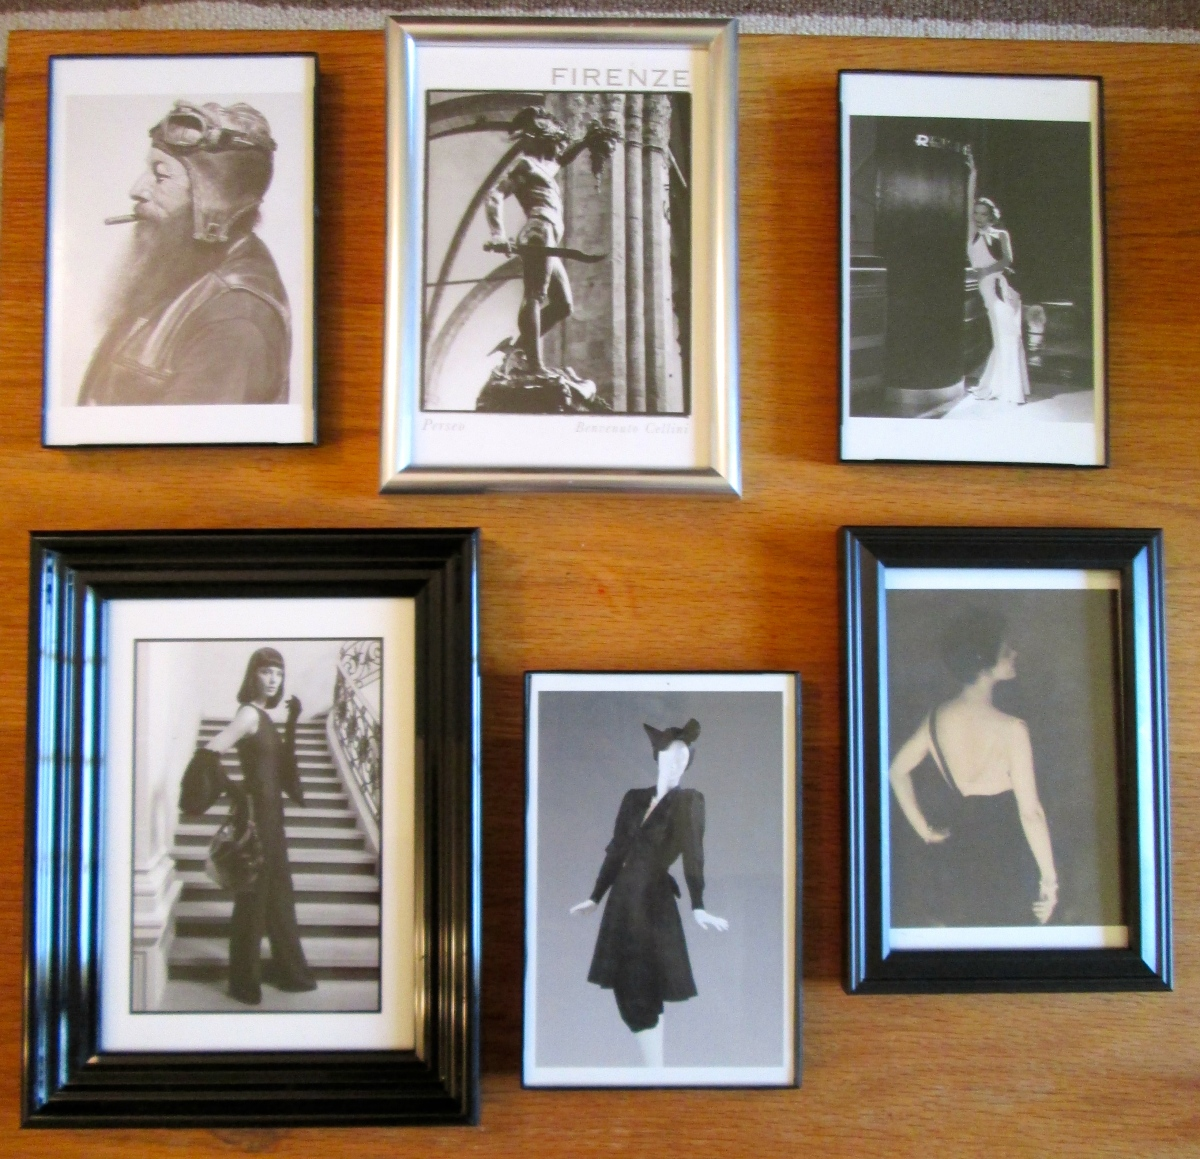 Creating Beautiful Framed Art on a Budget